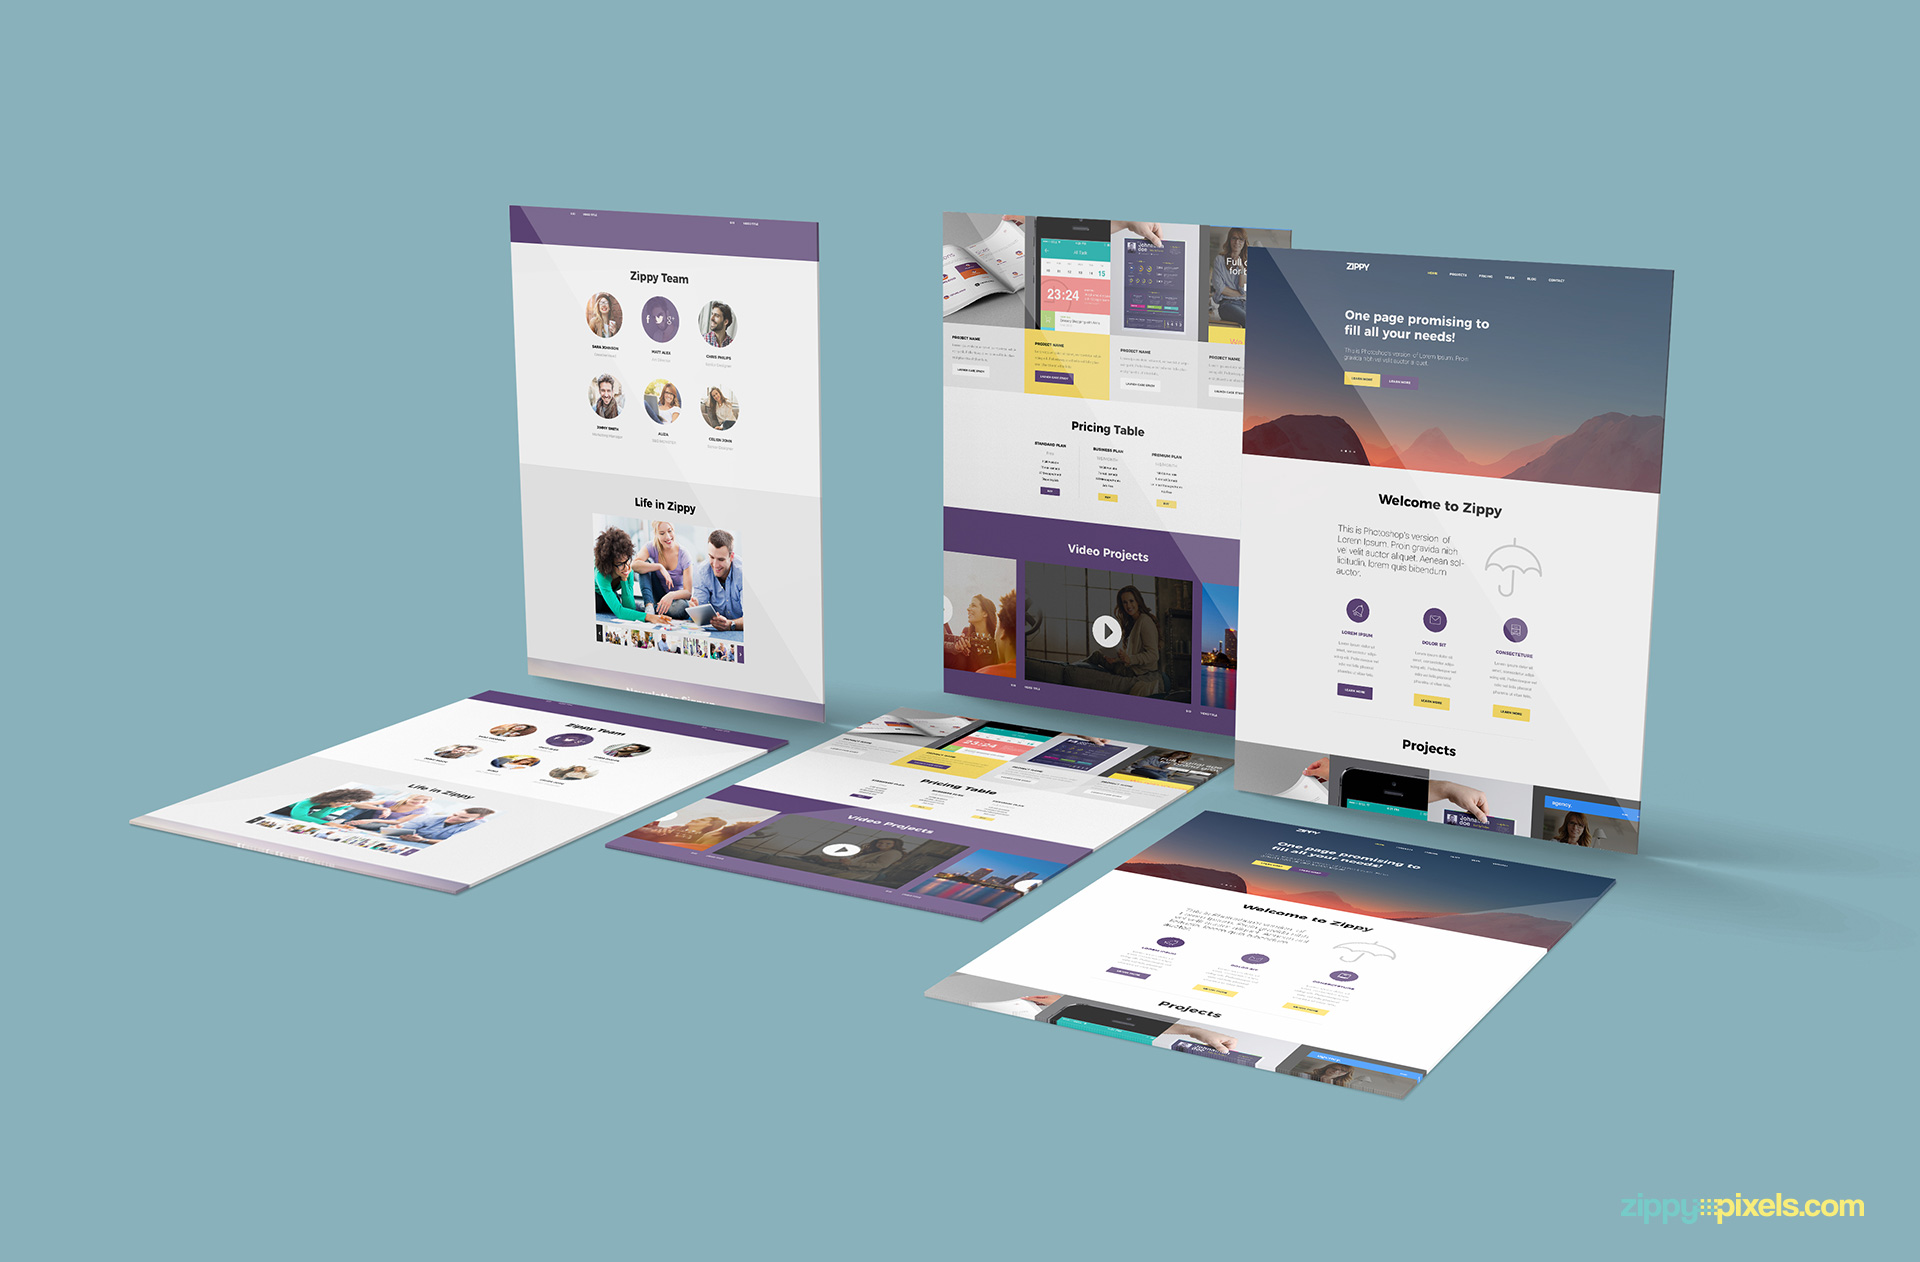 perspective-website-mockup-desktop-view-slides-on-surface